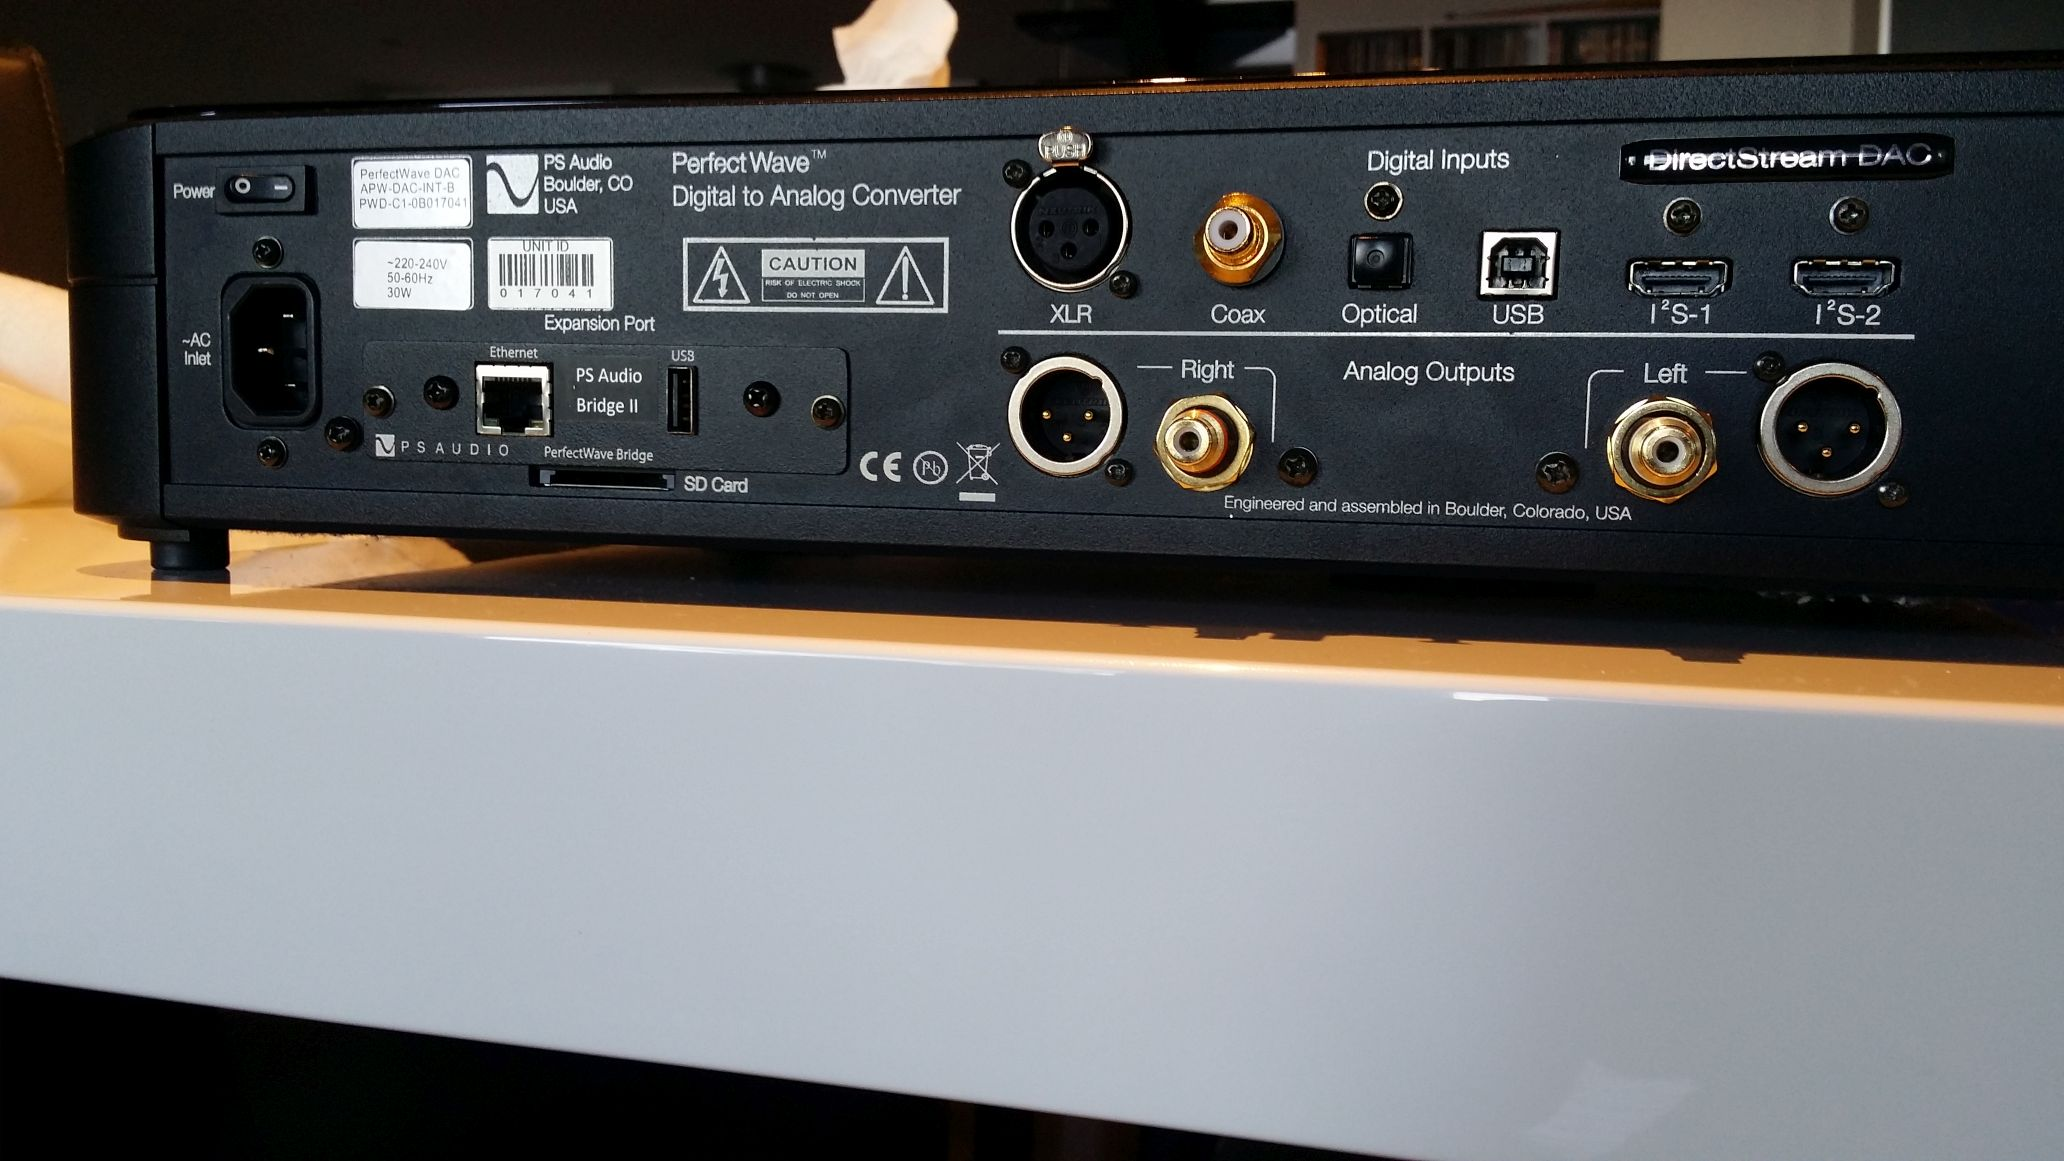 WITHDRAWN OR RELISTED: PS audio Directstream DAC with Bridge 2 ...